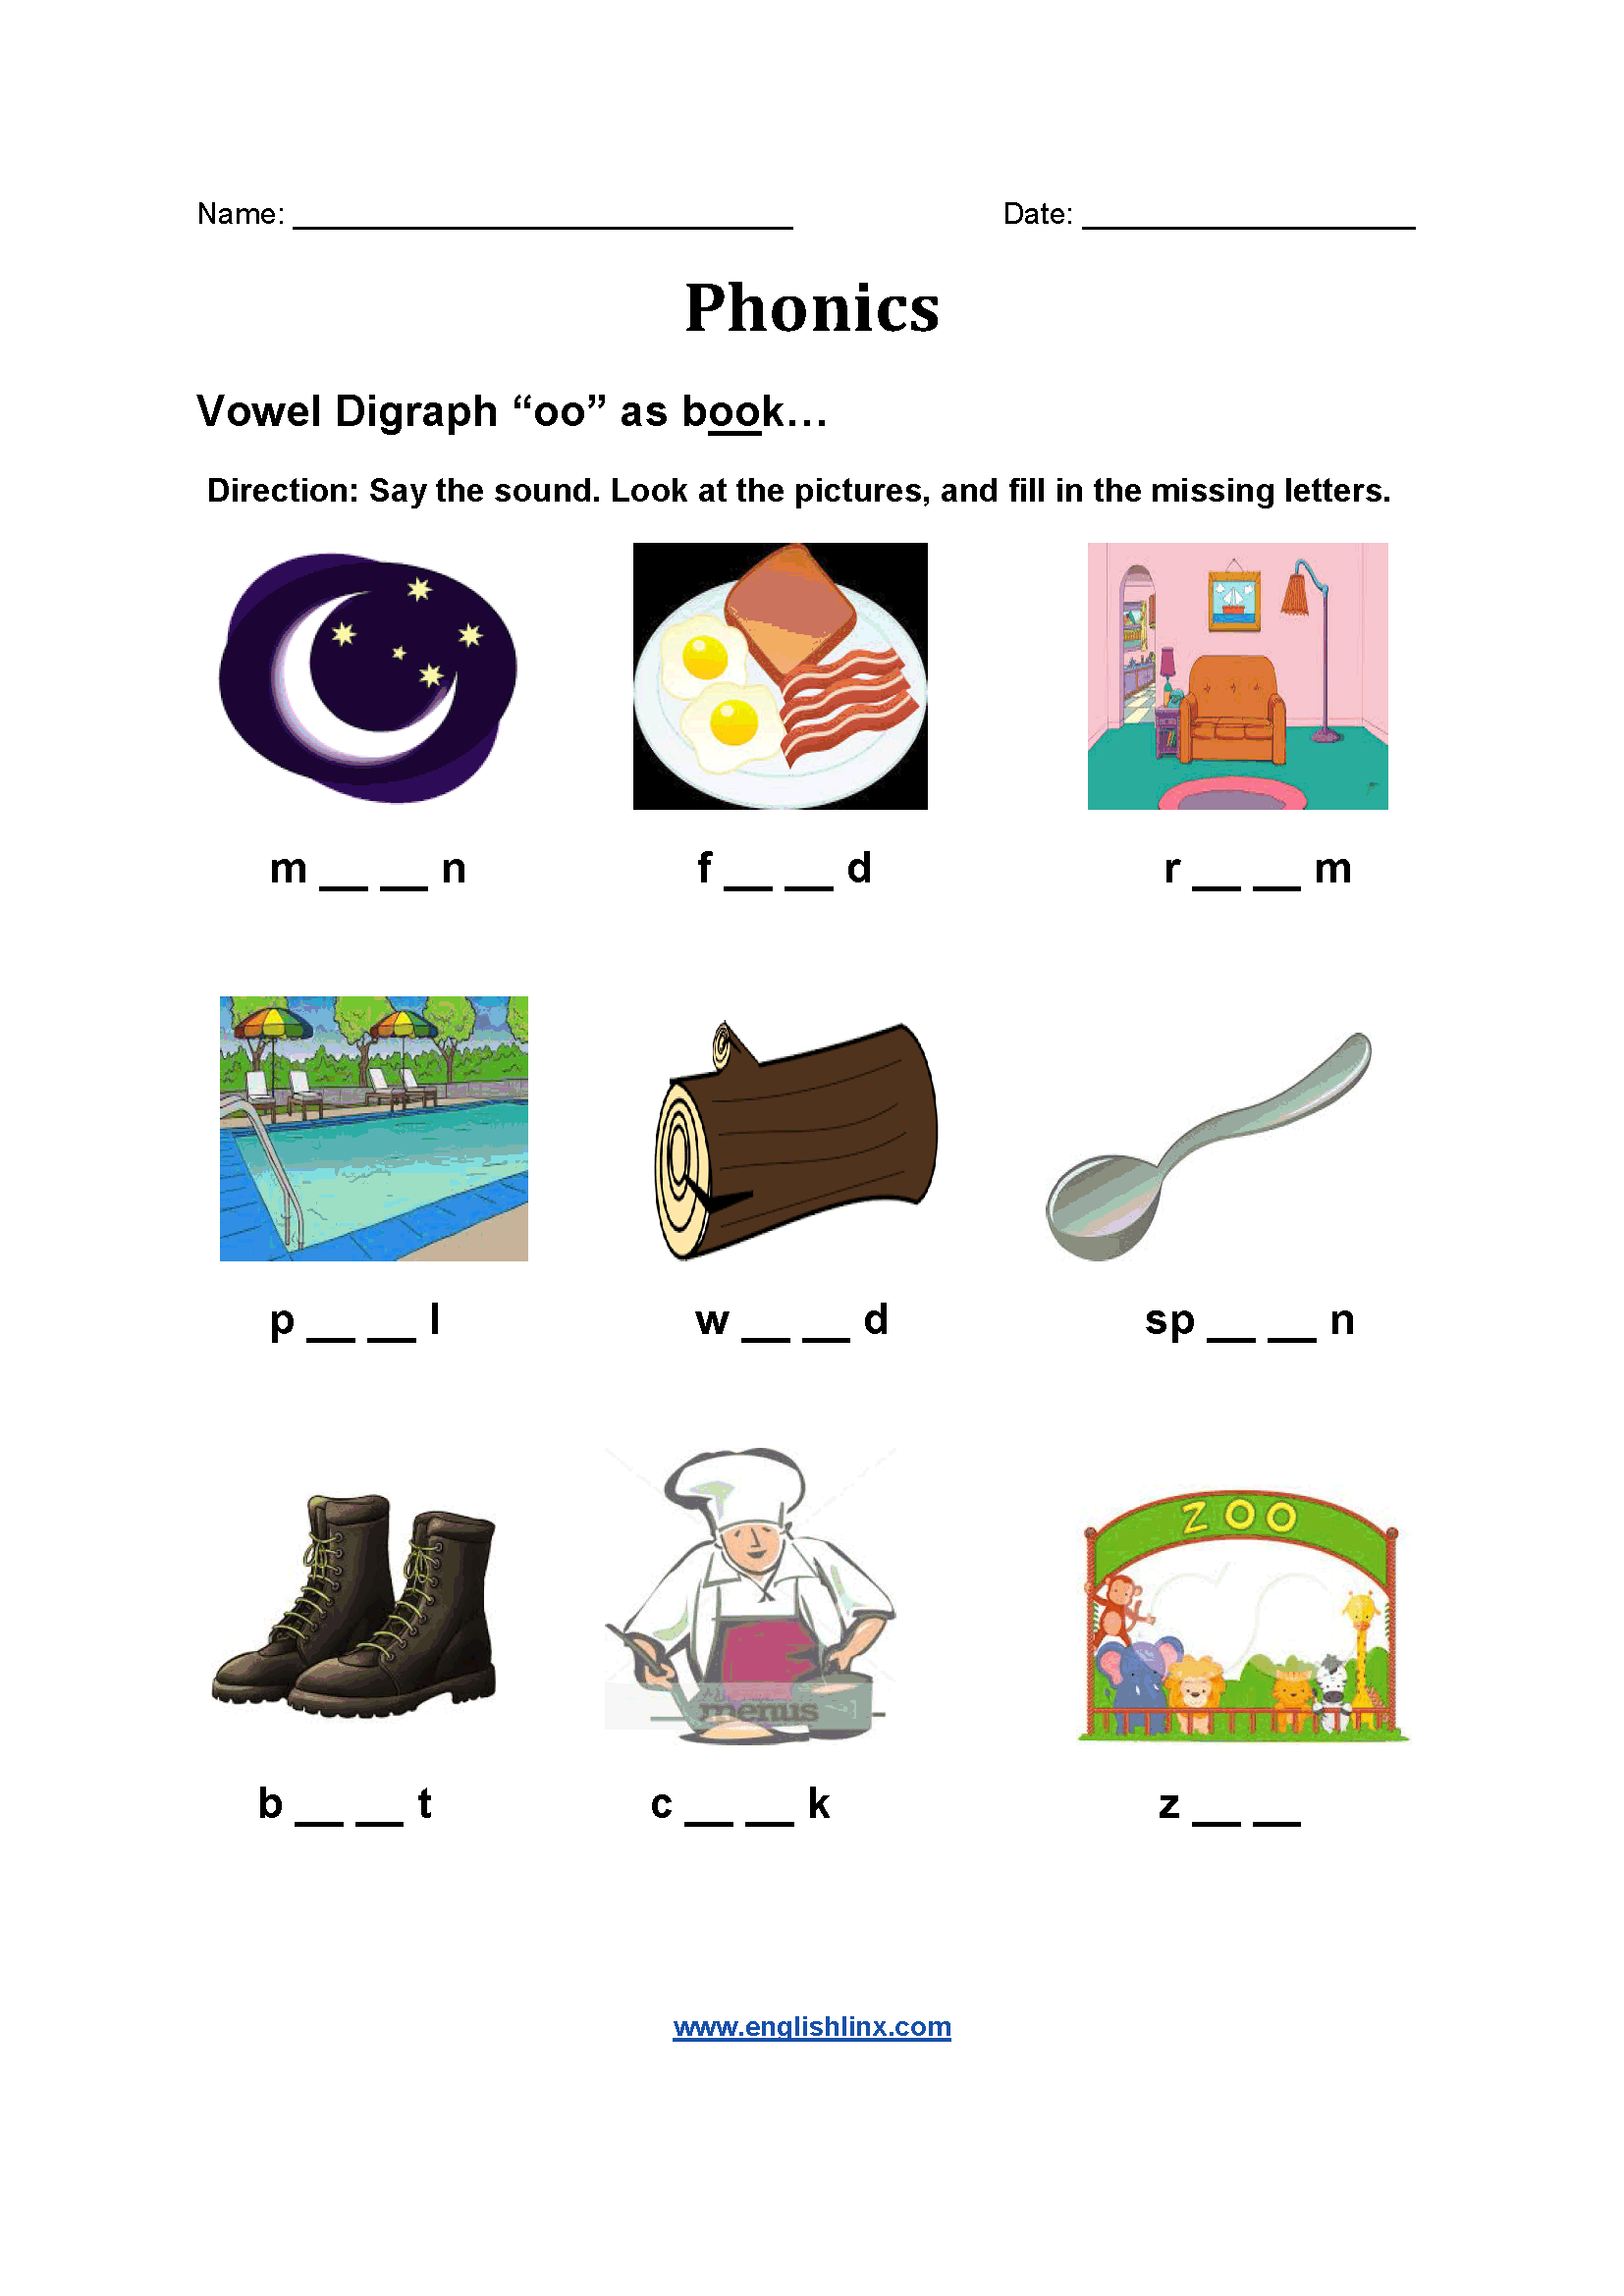 Phonics Test Worksheet